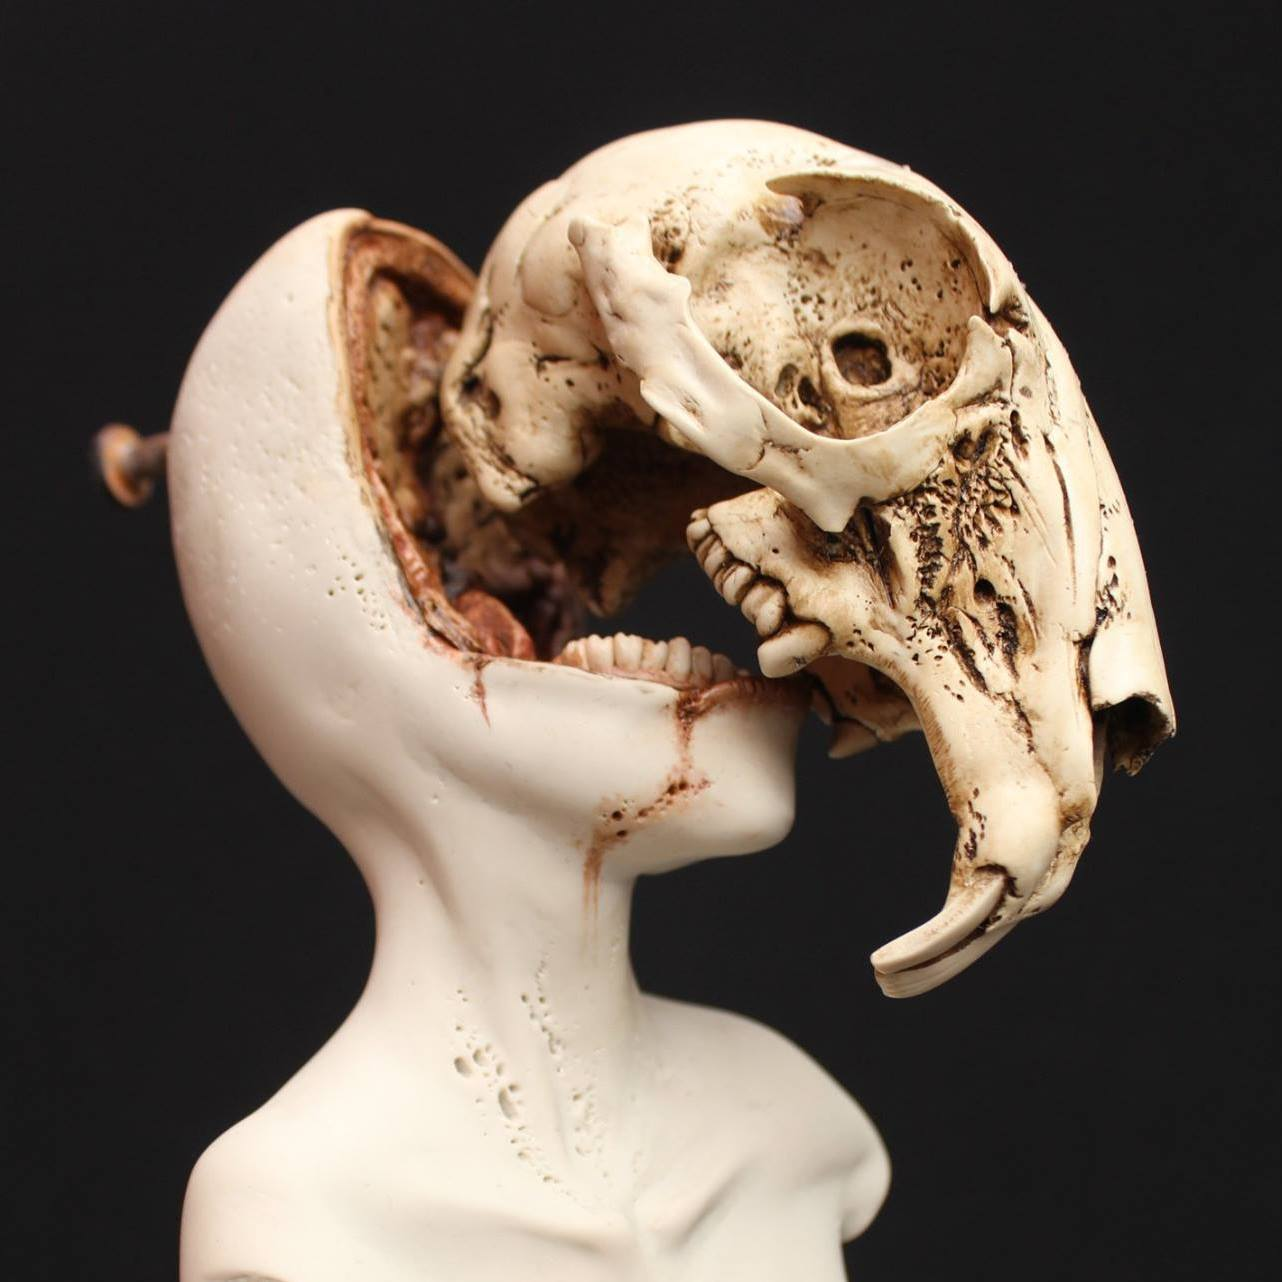 Emil Melmoth, Sculptures – Chasing rabbits drowned in formaldehyde